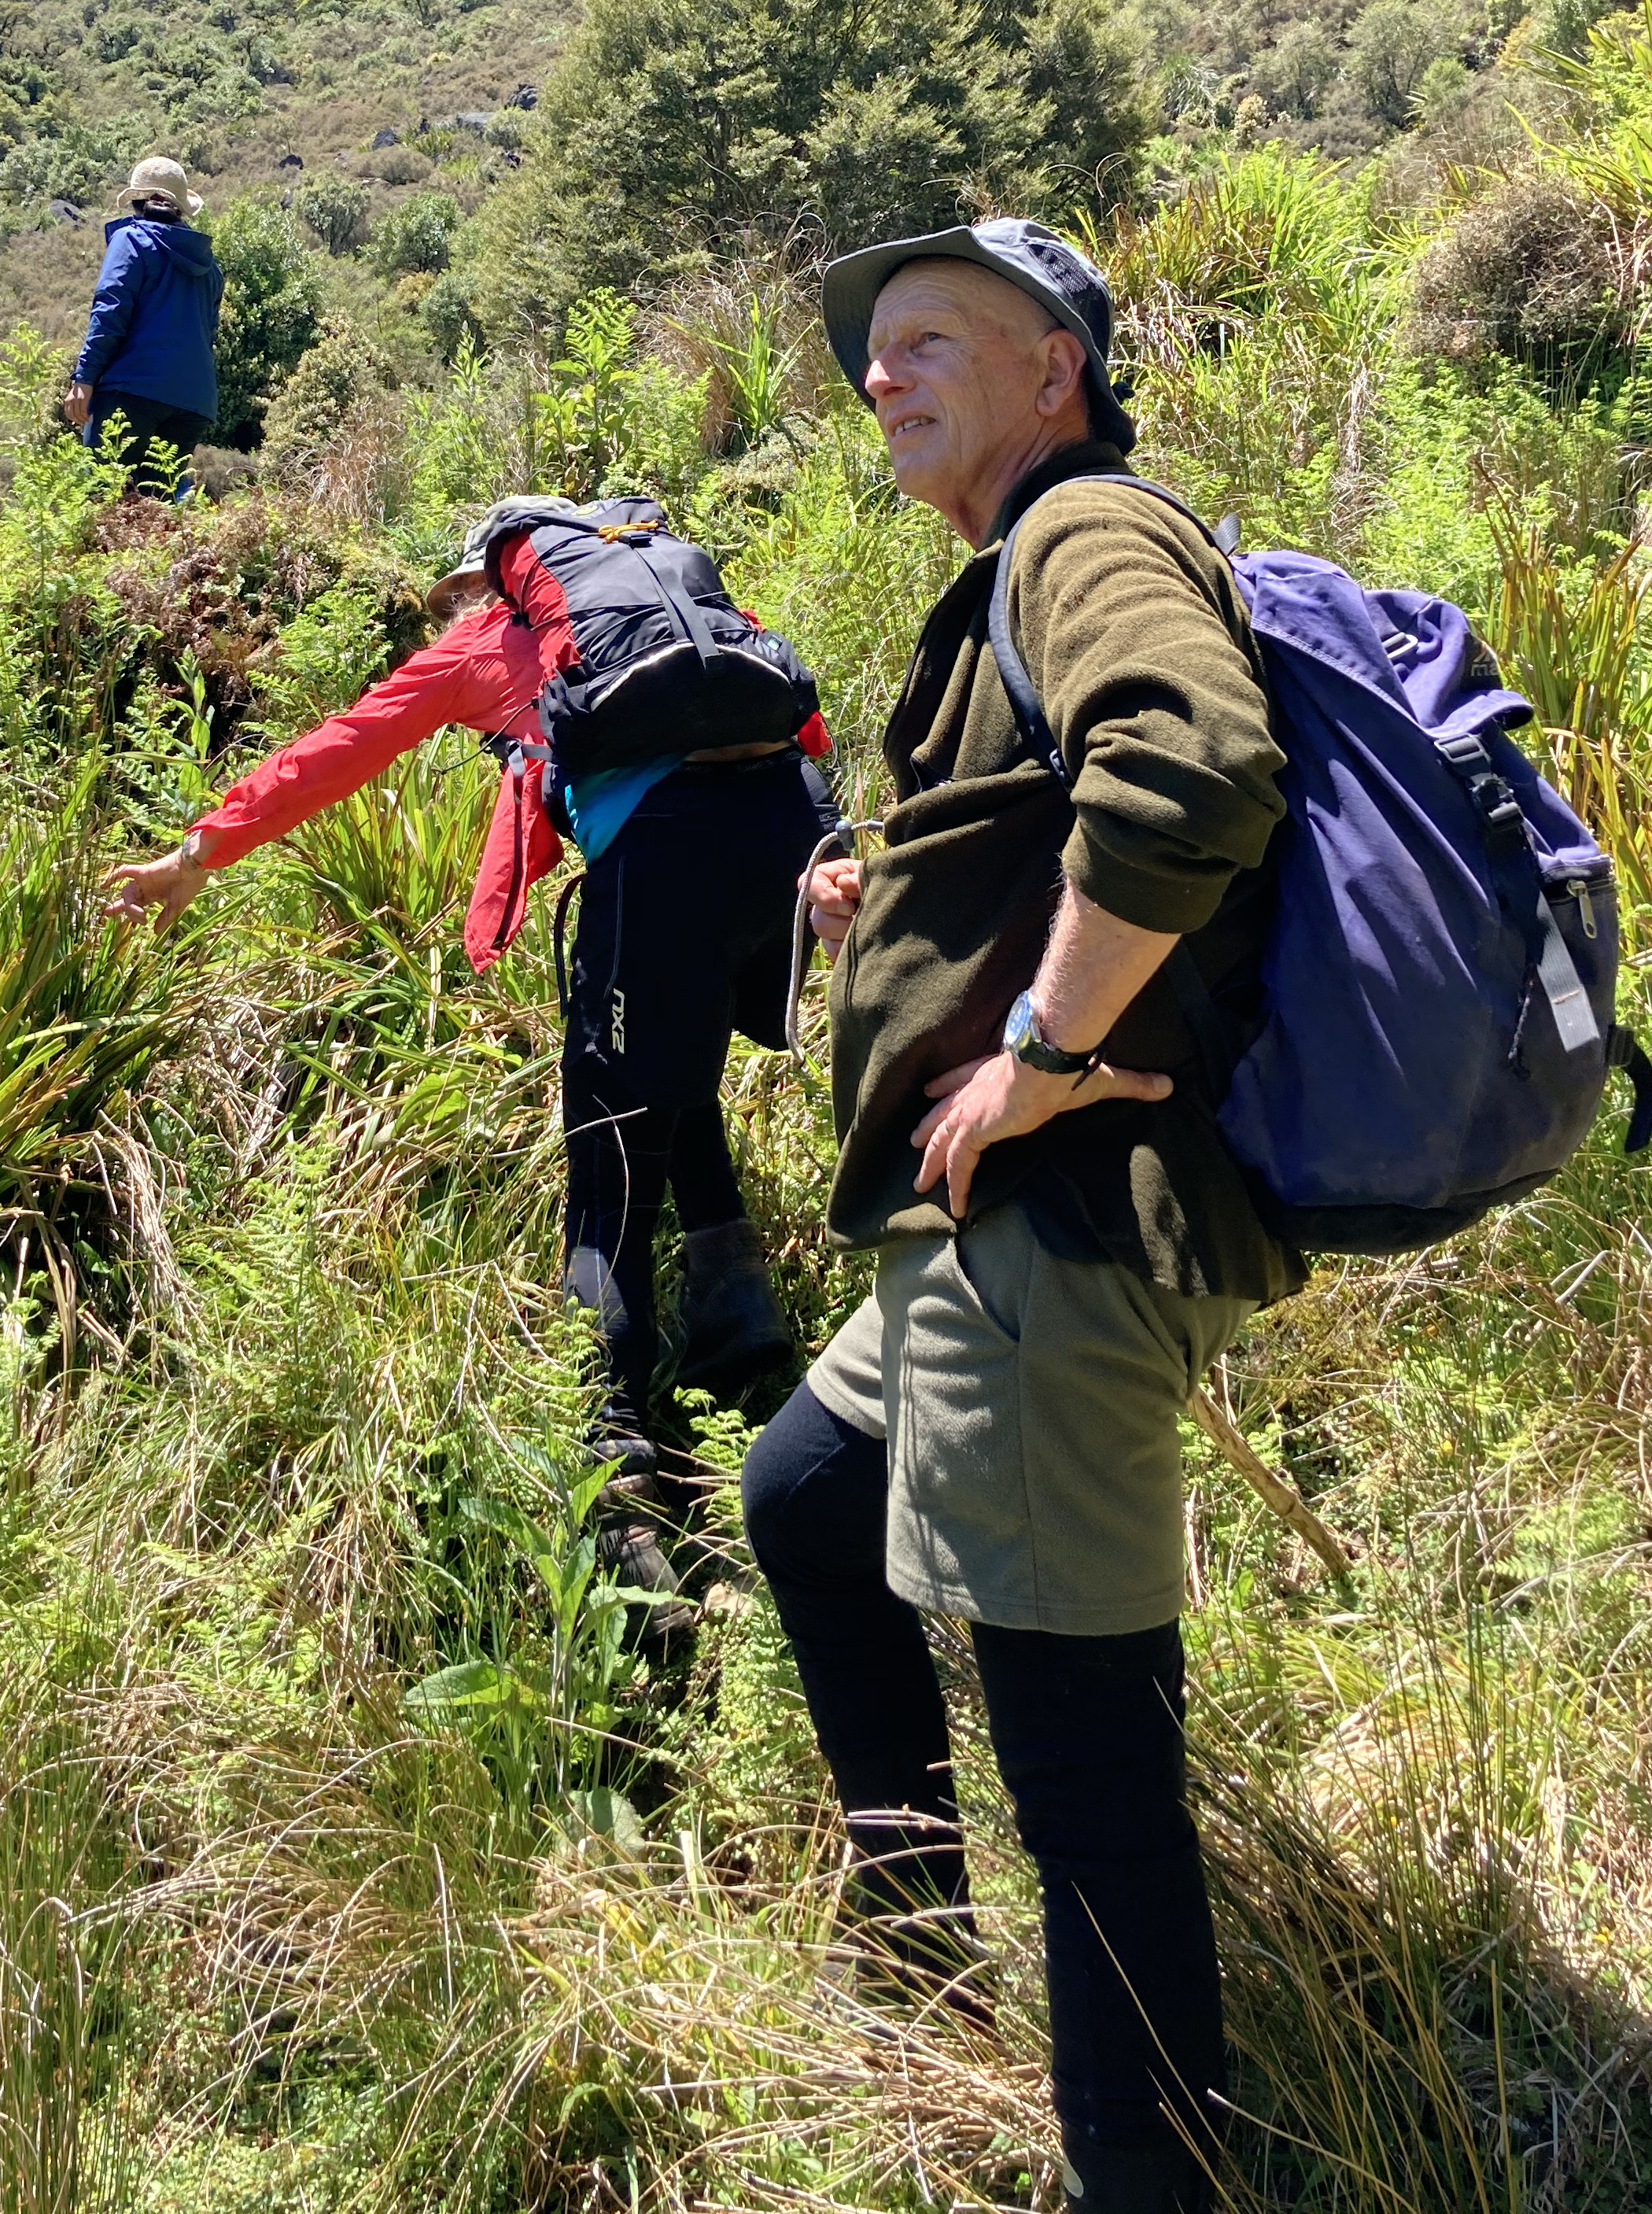 Three people with hiking gear and carrying packs climbing up the side of a grassy hill